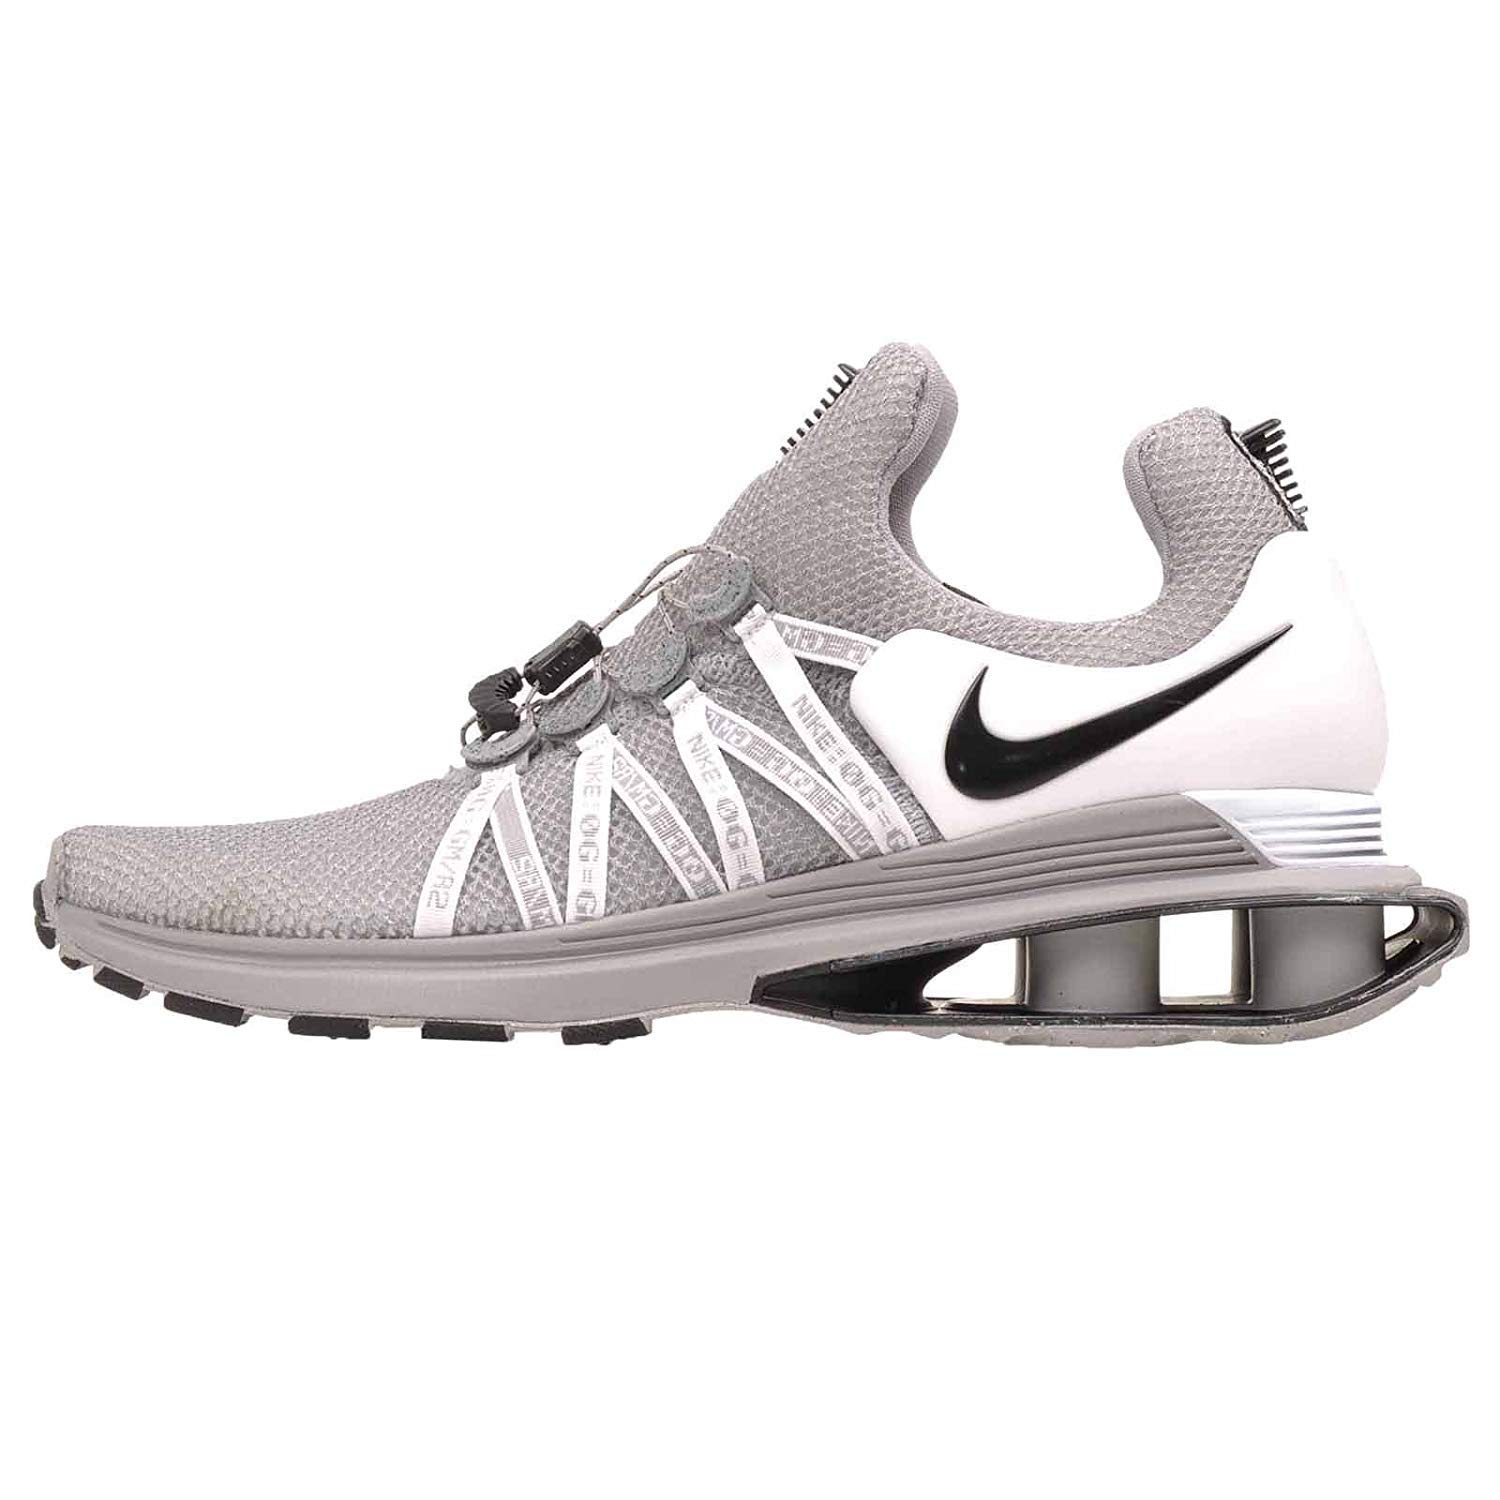 new concept 10b6c b2748 Amazon.com   Nike Shox Gravity Men s Running Shoe   Basketball